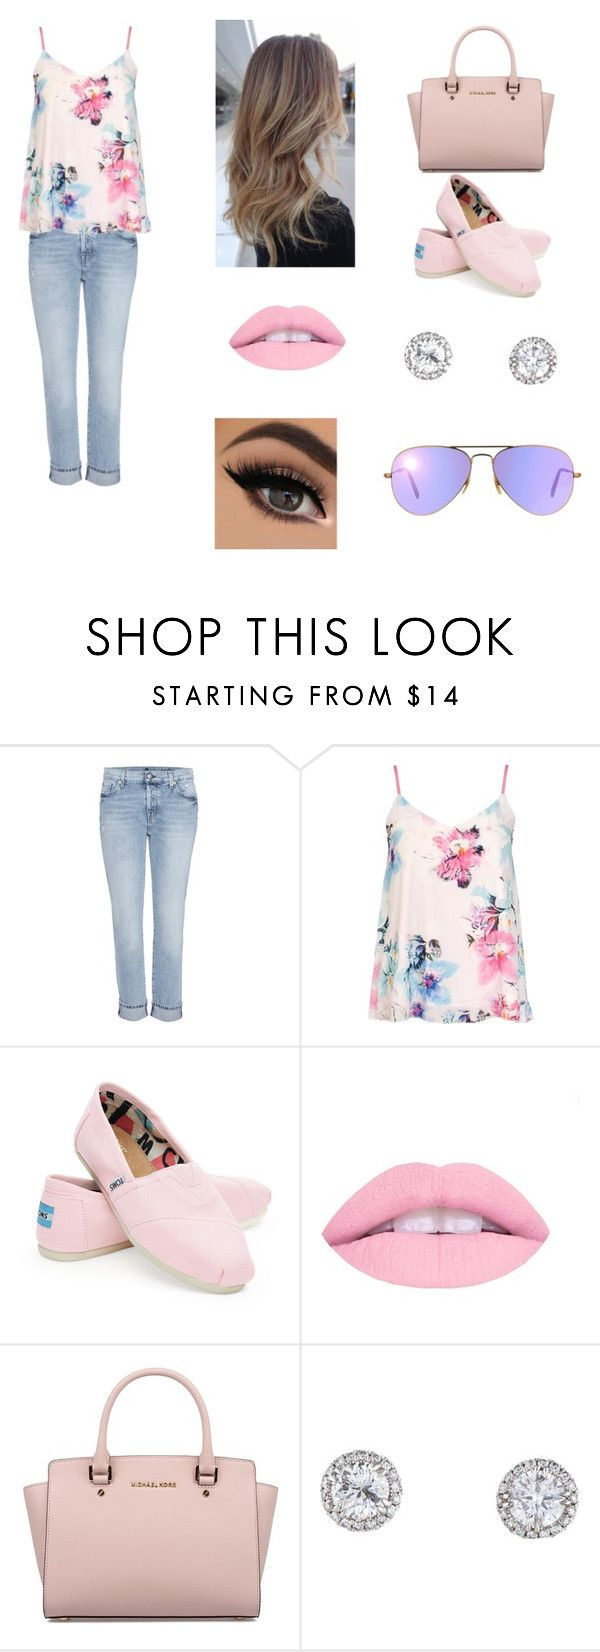 """""""Wilmely"""" by emellyferreira ❤ liked on Polyvore featuring 7 For All Mankind, Dorothy Perkins, TOMS, Michael Kors and Ray-Ban"""